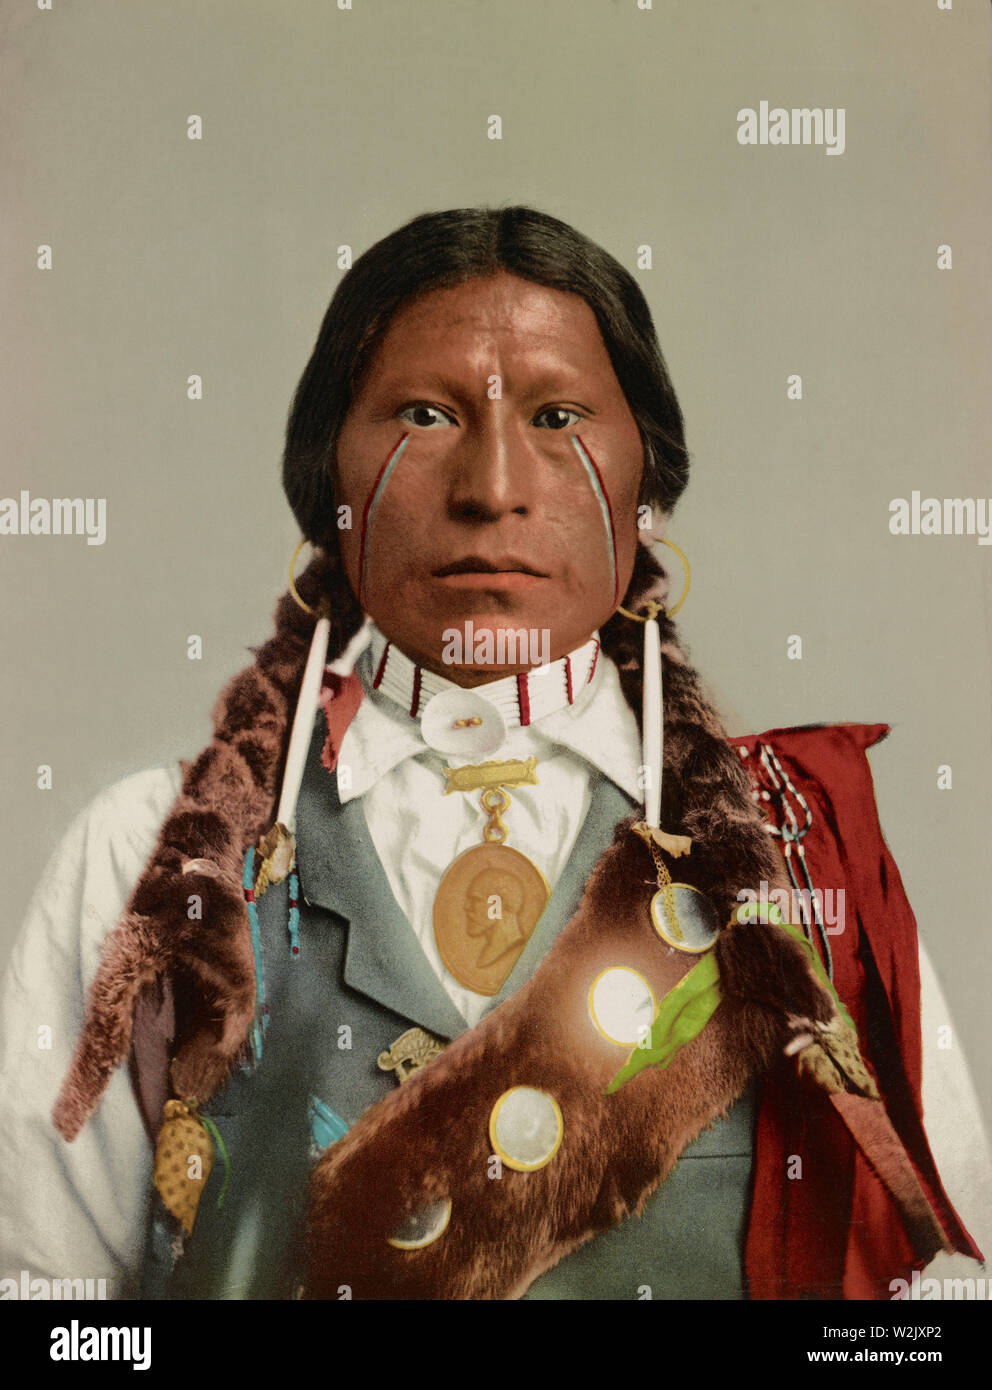 Apache Chief James A Garfield Head And Shoulders Portrait Detroit Photographic Company 1899 Stock Photo Alamy